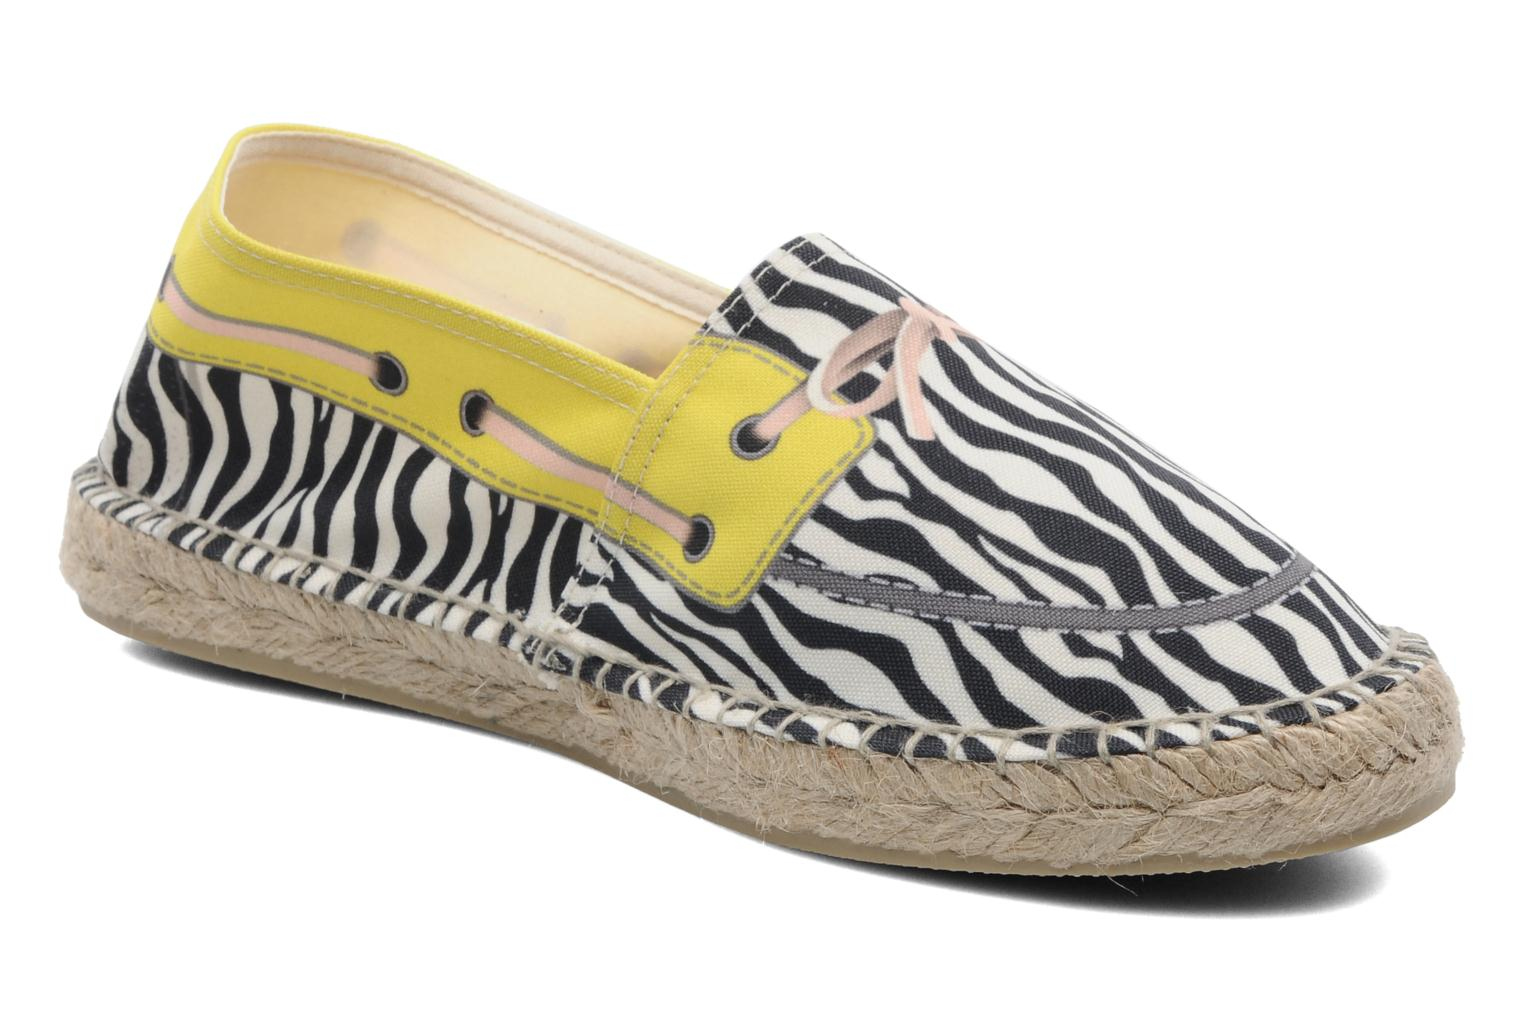 Espadrilles Cruise W by String Republic